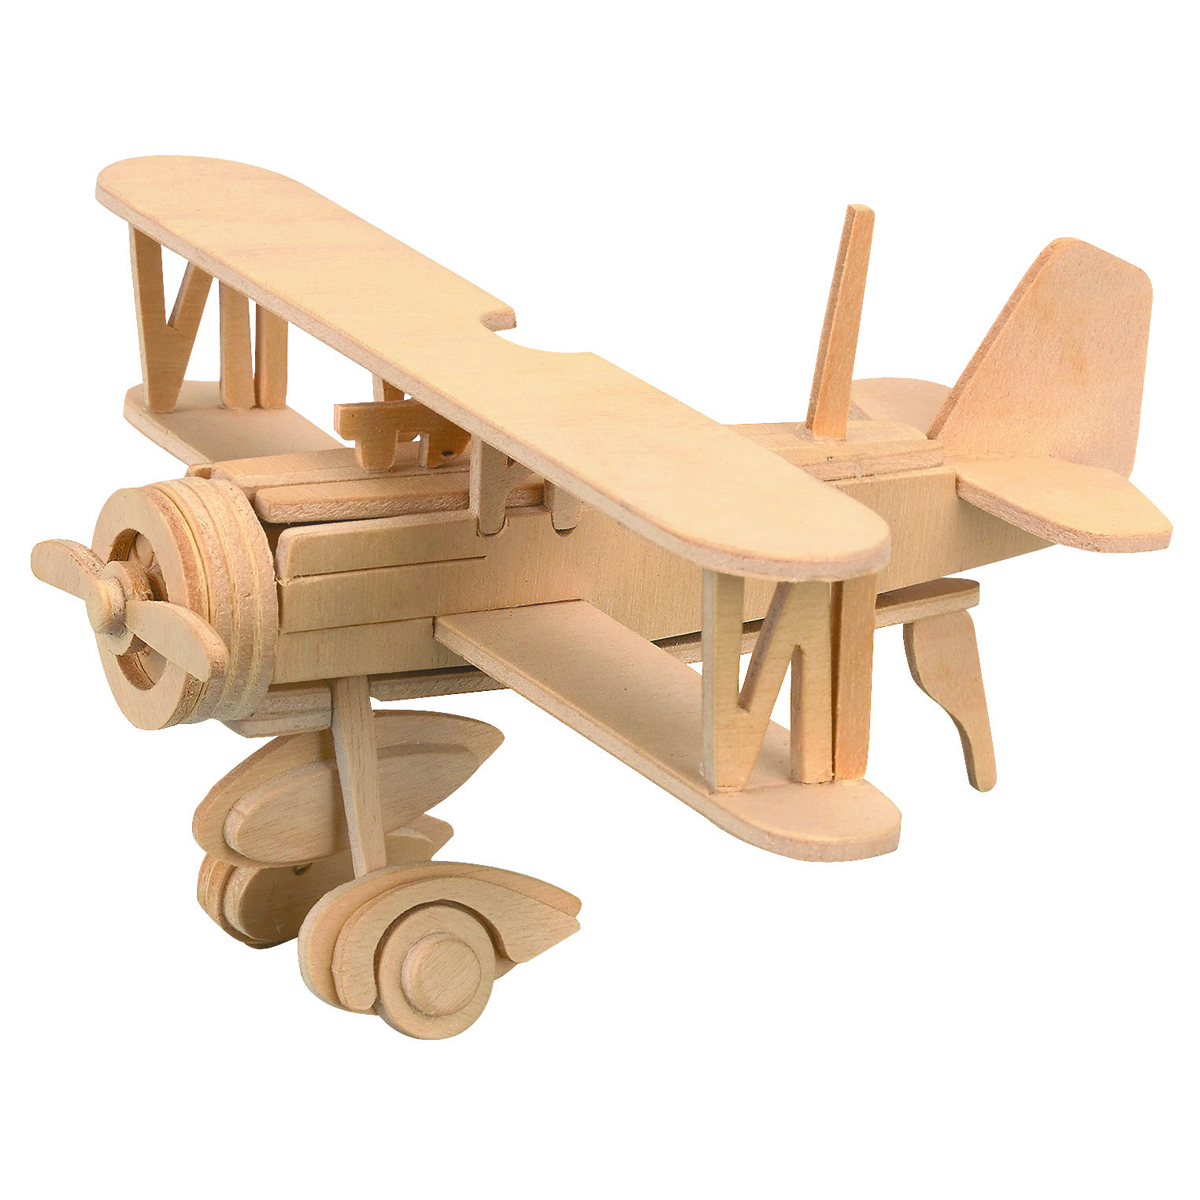 Wooden Toy Plans Catalog : Balsa wood puzzle airplane